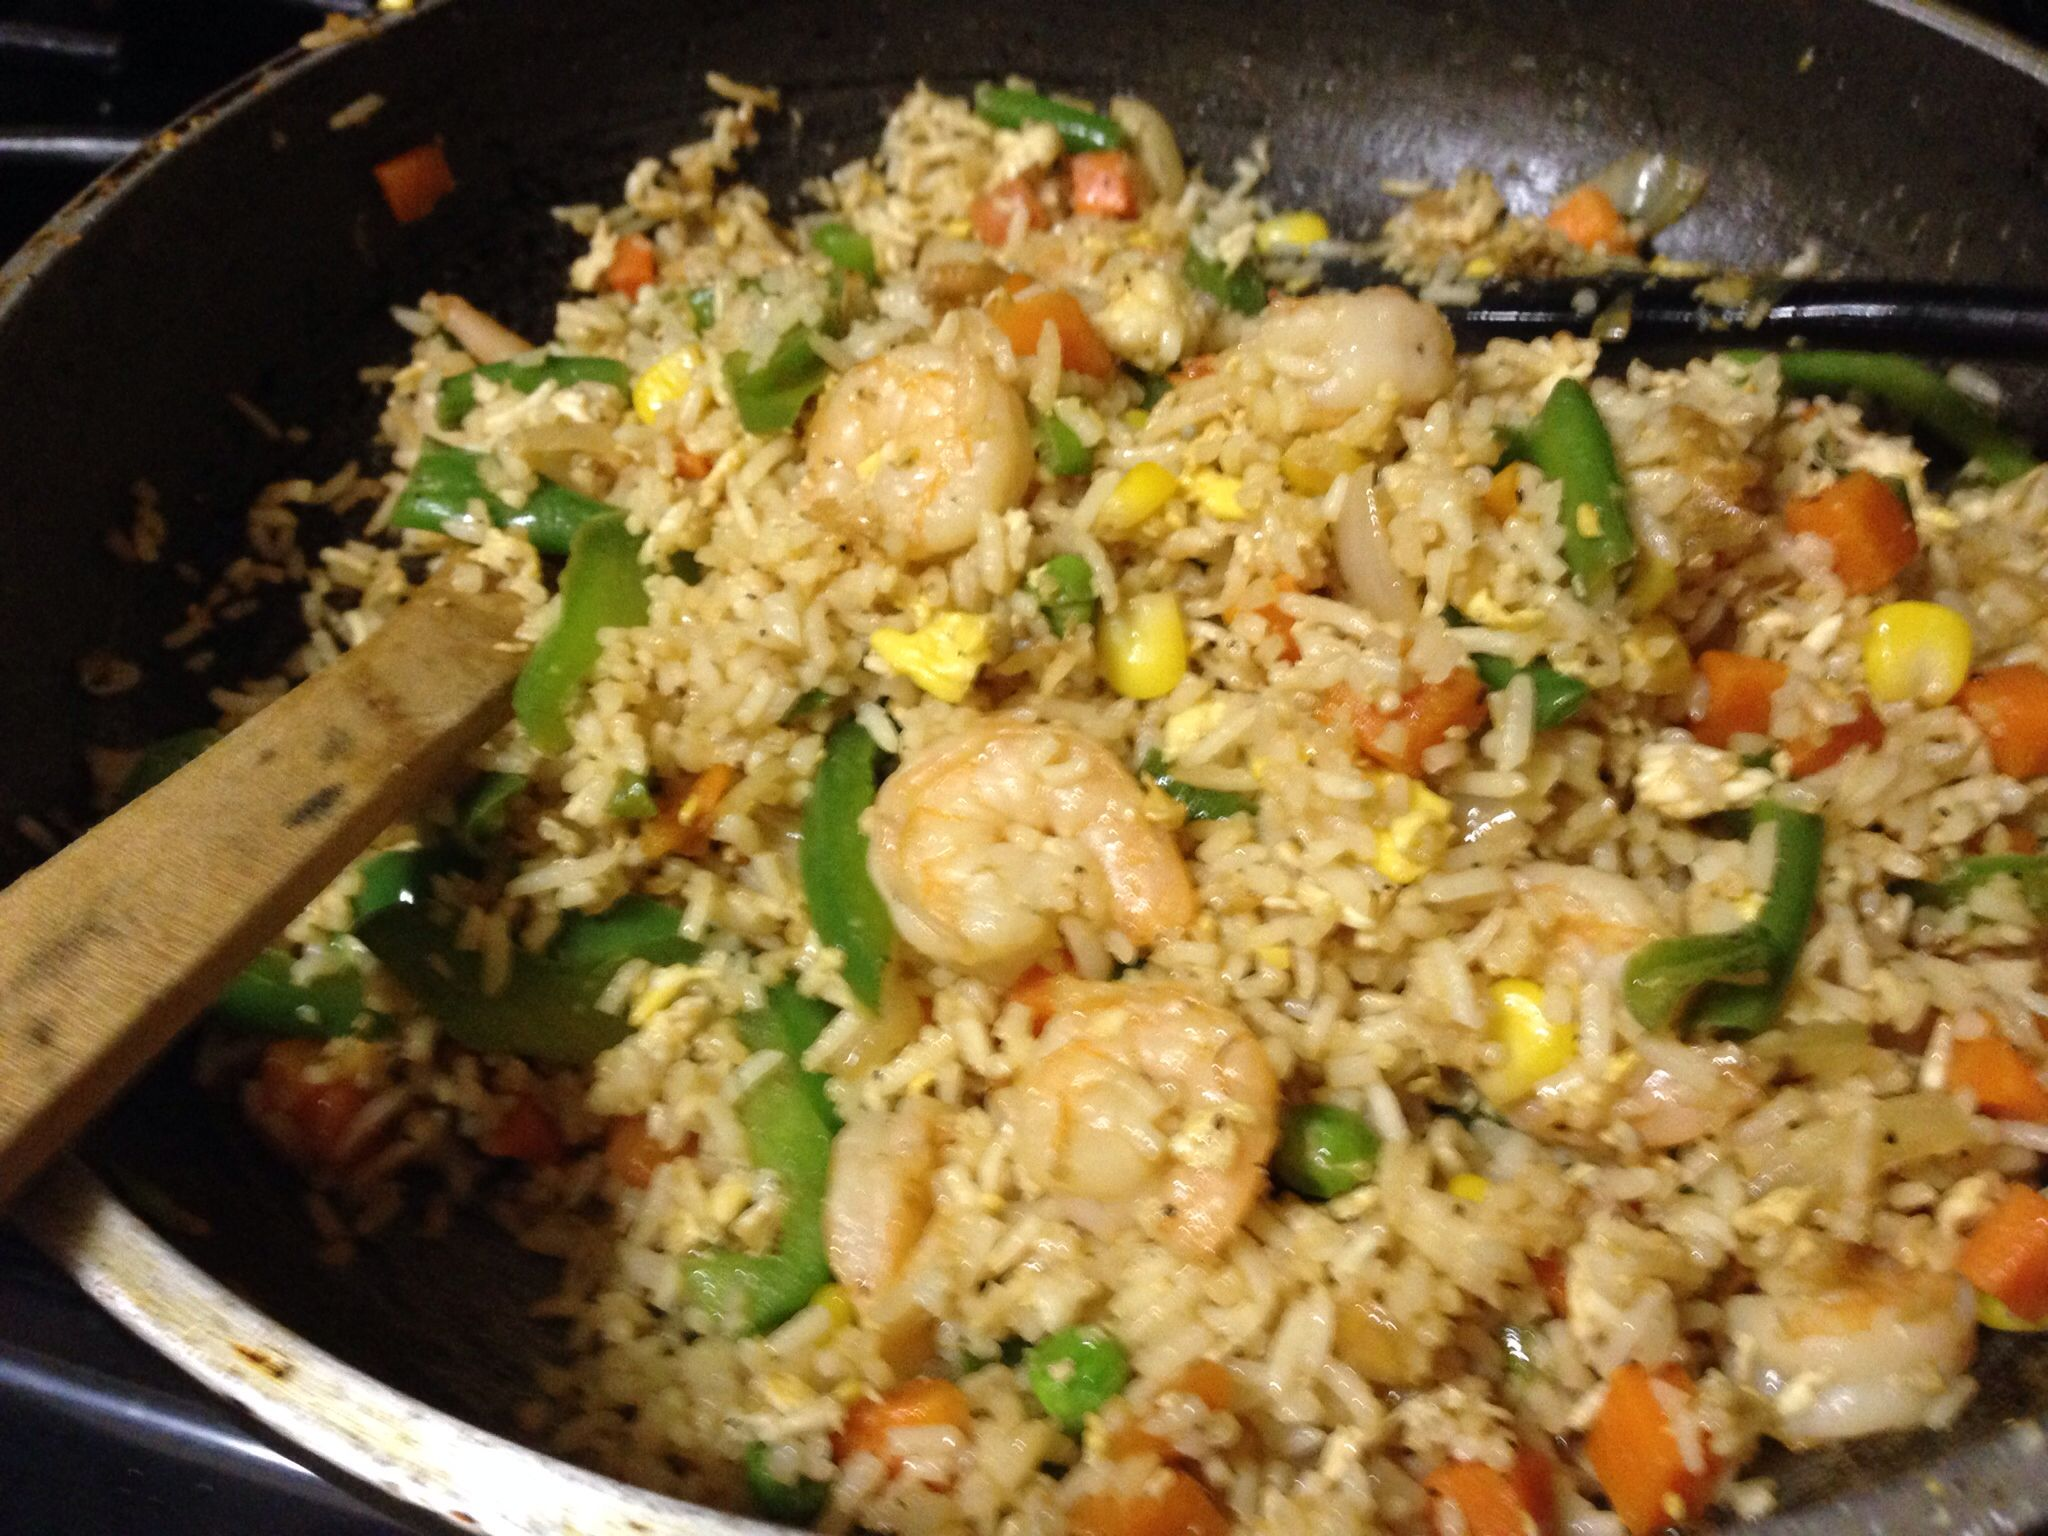 Shrimp fried brown rice so tasty and easy to make food porn shrimp fried brown rice so tasty and easy to make ccuart Image collections